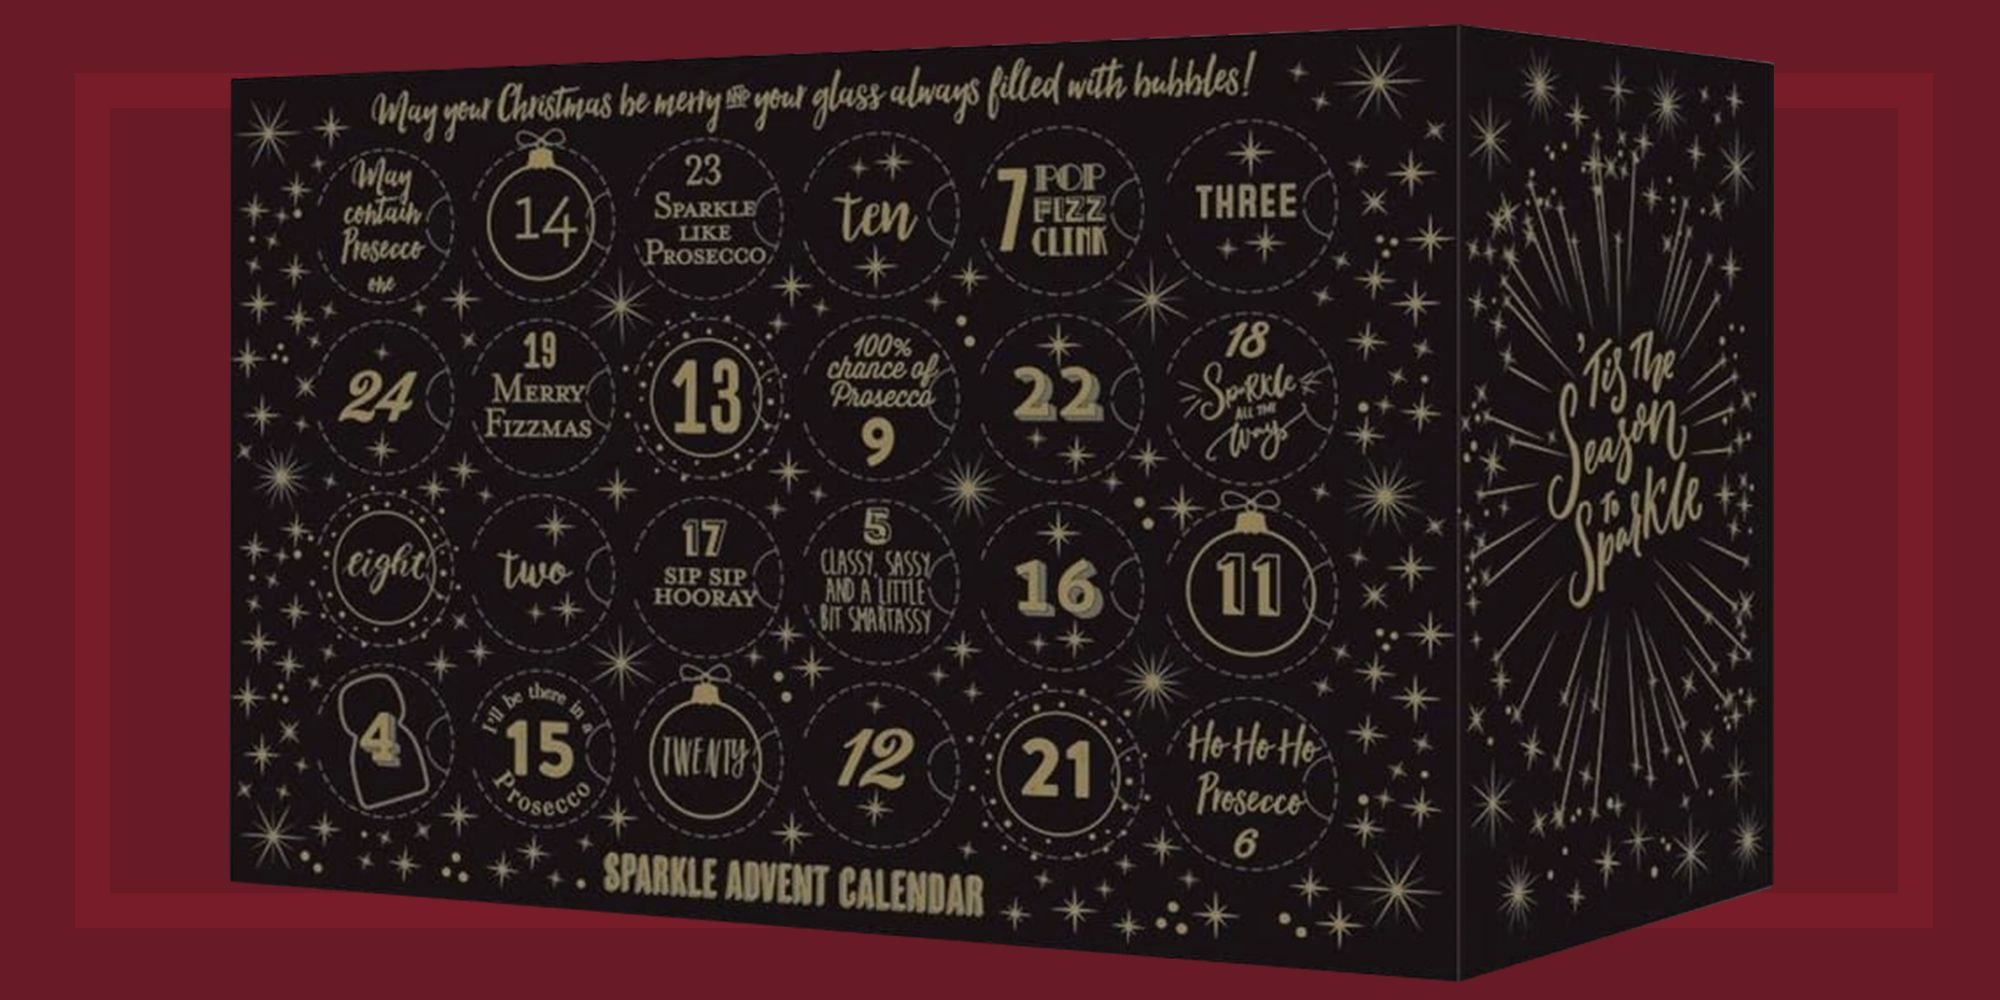 Cheerful Alcohol Advent Calendars 2018 Whiskey Liquor Adventcalendars Alcohol Advent Calendars 2018 Whiskey Liquor Virgin Wines Advent Calendar Australia Virgin Wine Advent Calendar Contents nice food Virgin Wines Advent Calendar